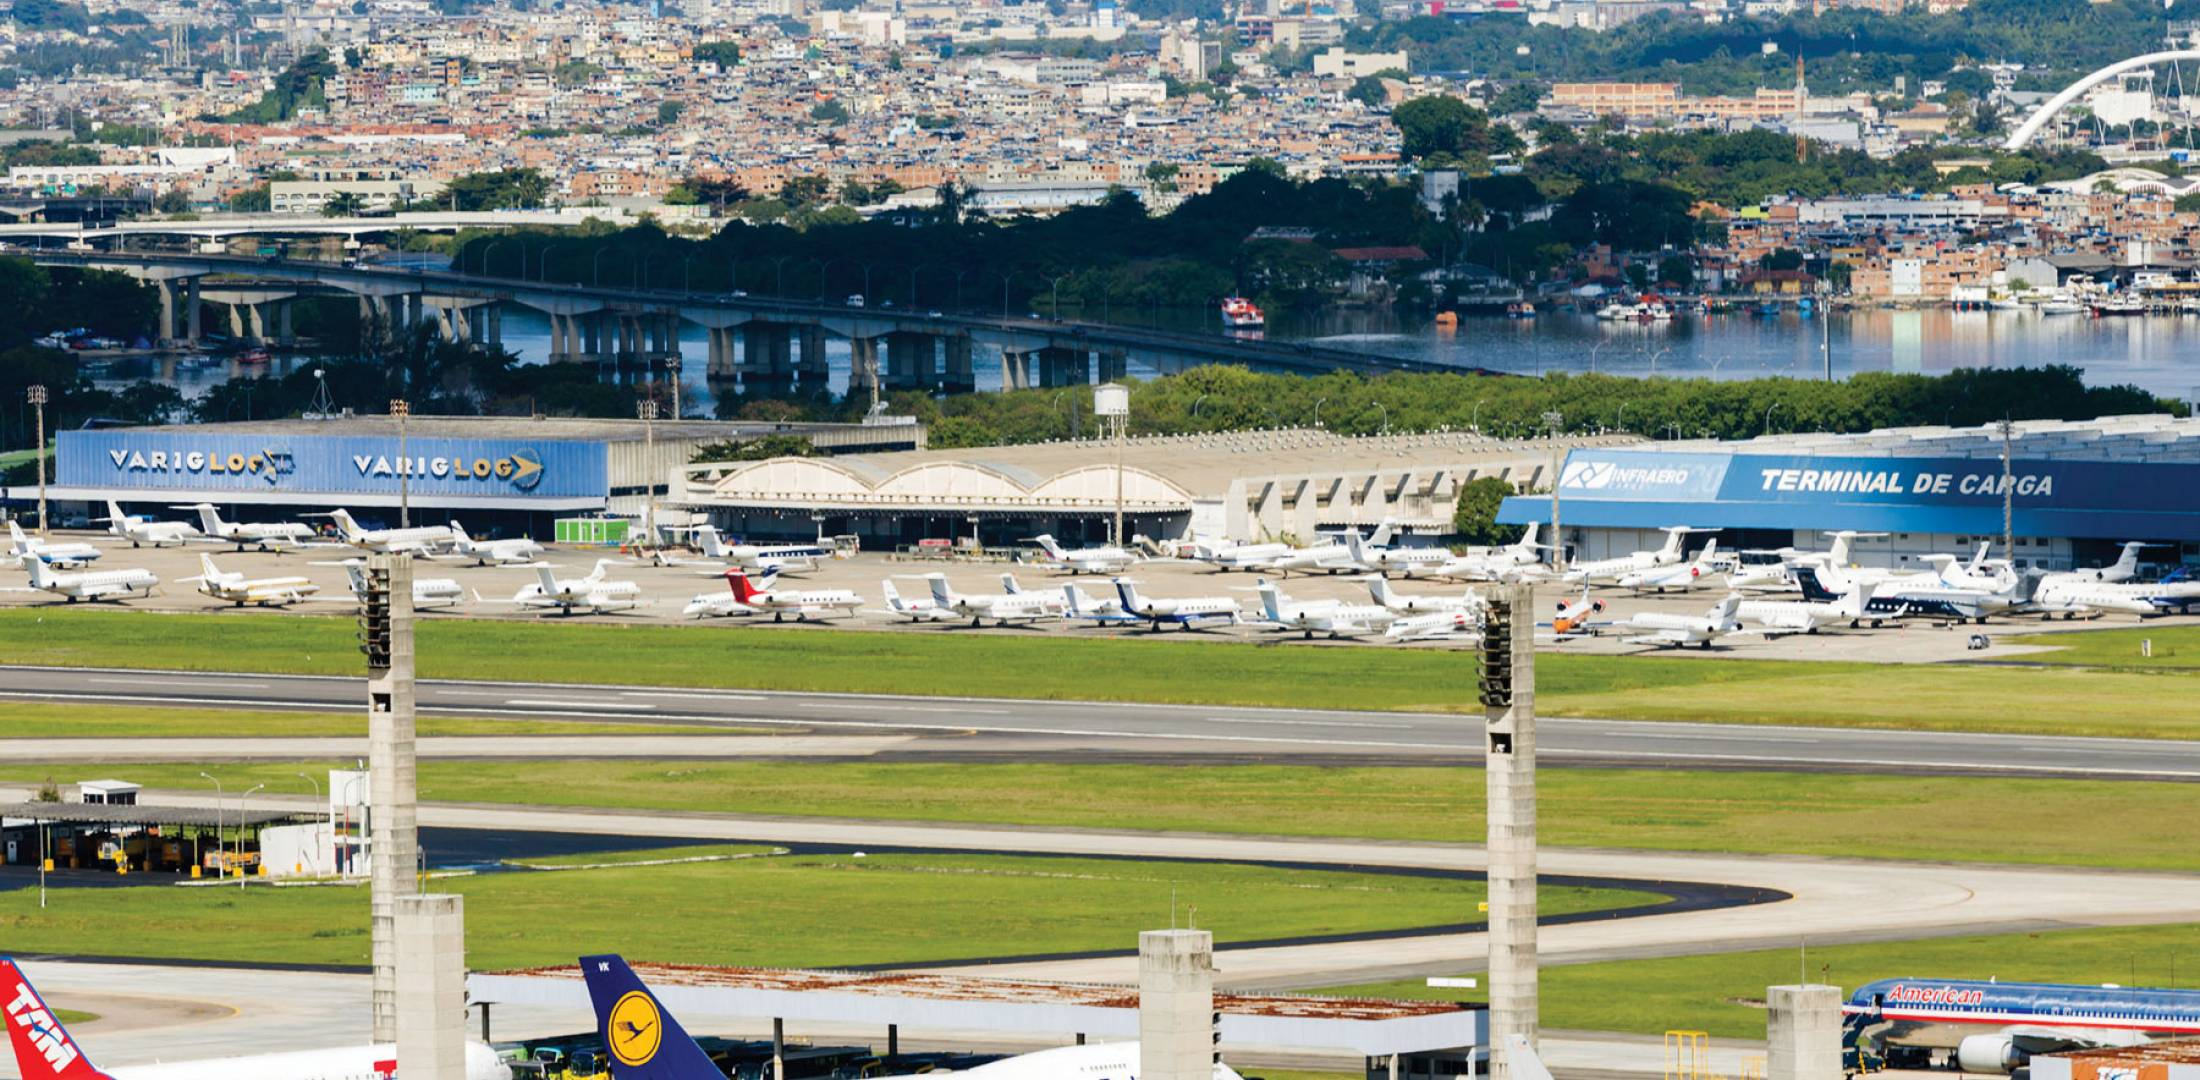 brazil aviation industry Restrictions and competition squeezing business aviation in brazil by richard pedicini ain has heard repeated complaints at business aviation industry gatherings that anac brazil's aviation sector passed the stress test of the 2014 world cup.